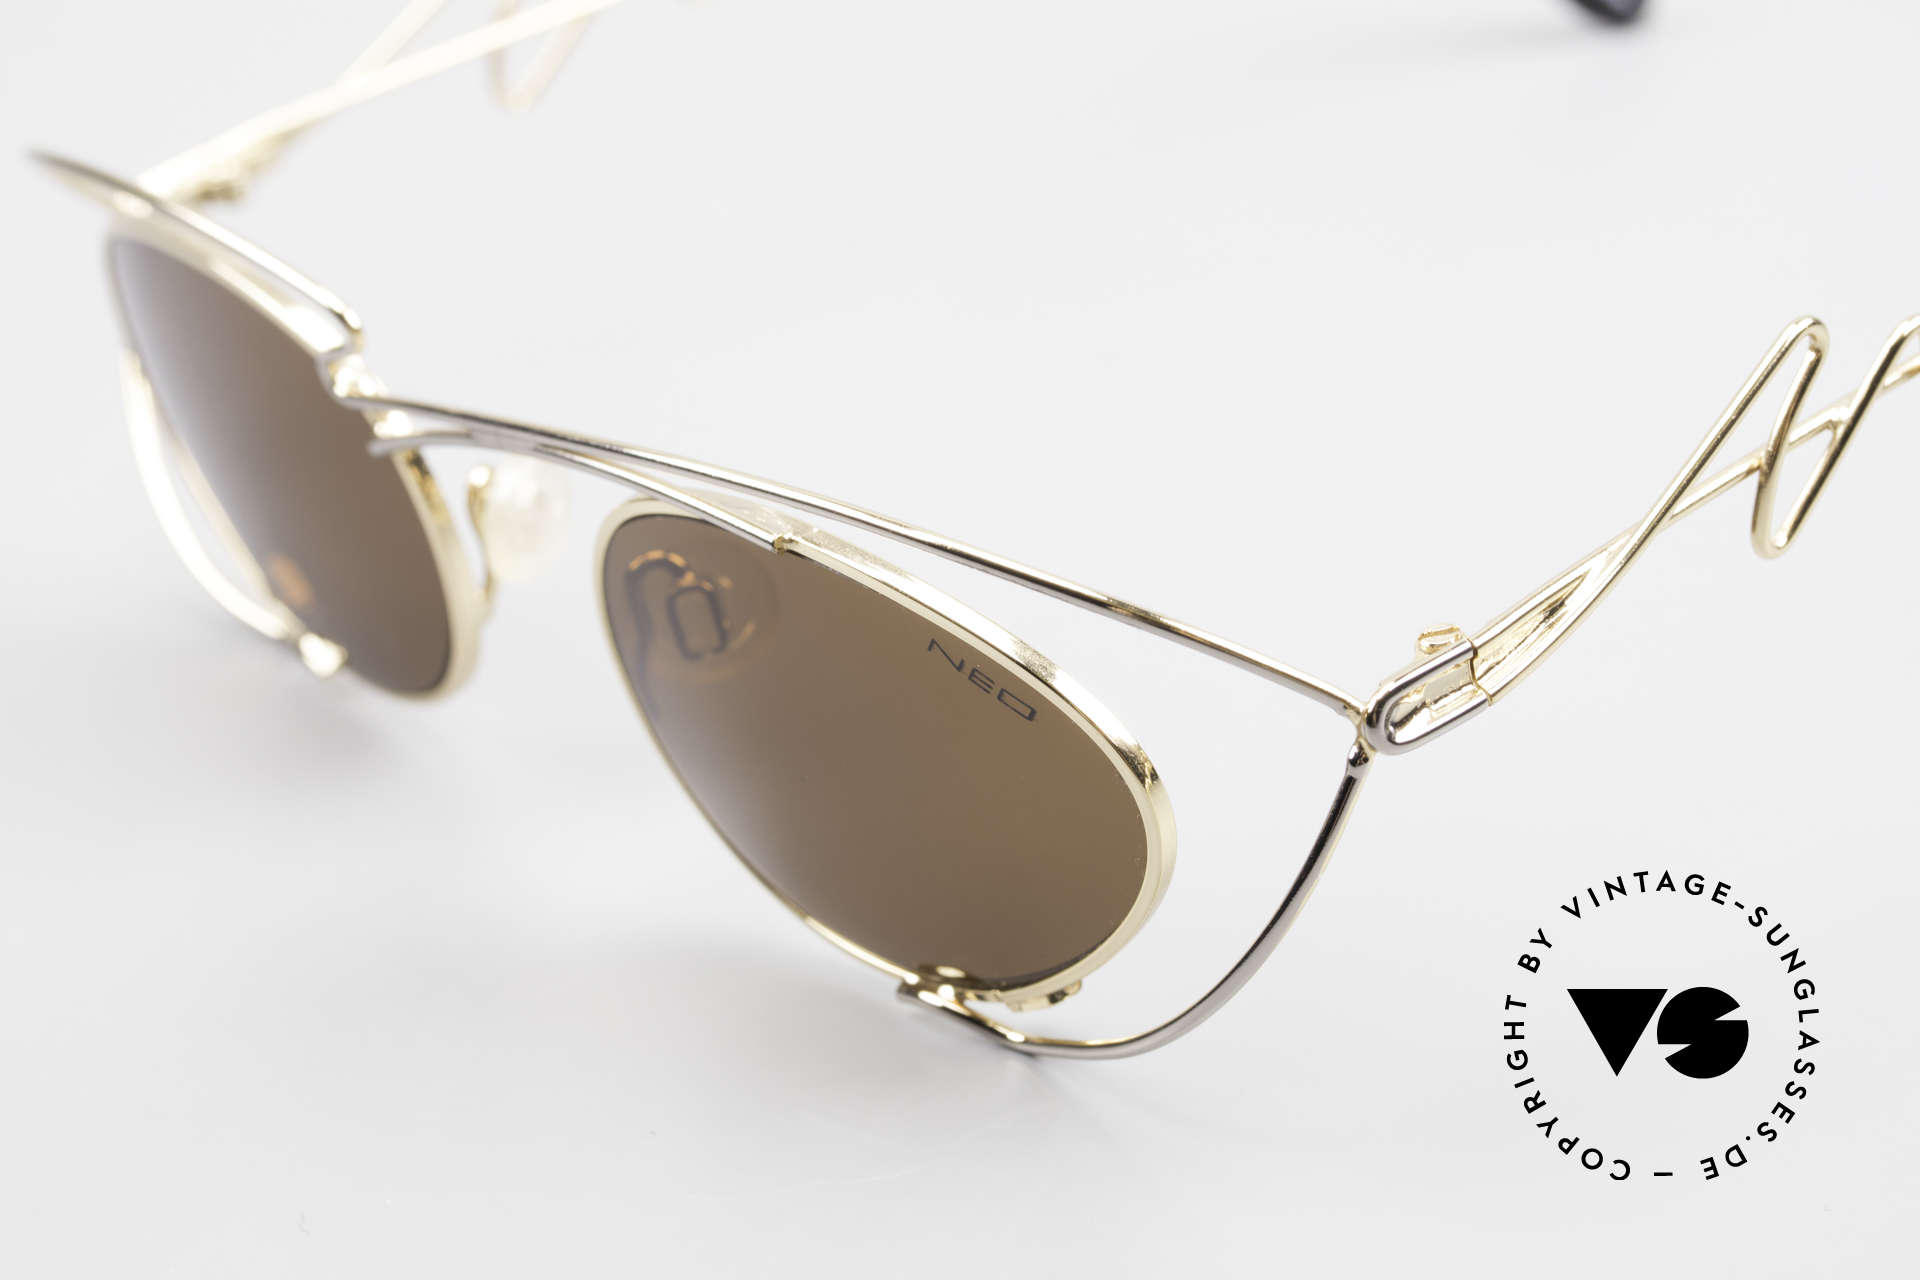 Neostyle Holiday 973 Crazy 90's Ladies Sunglasses, unworn (like all our vintage NEOSTYLE shades), Made for Women